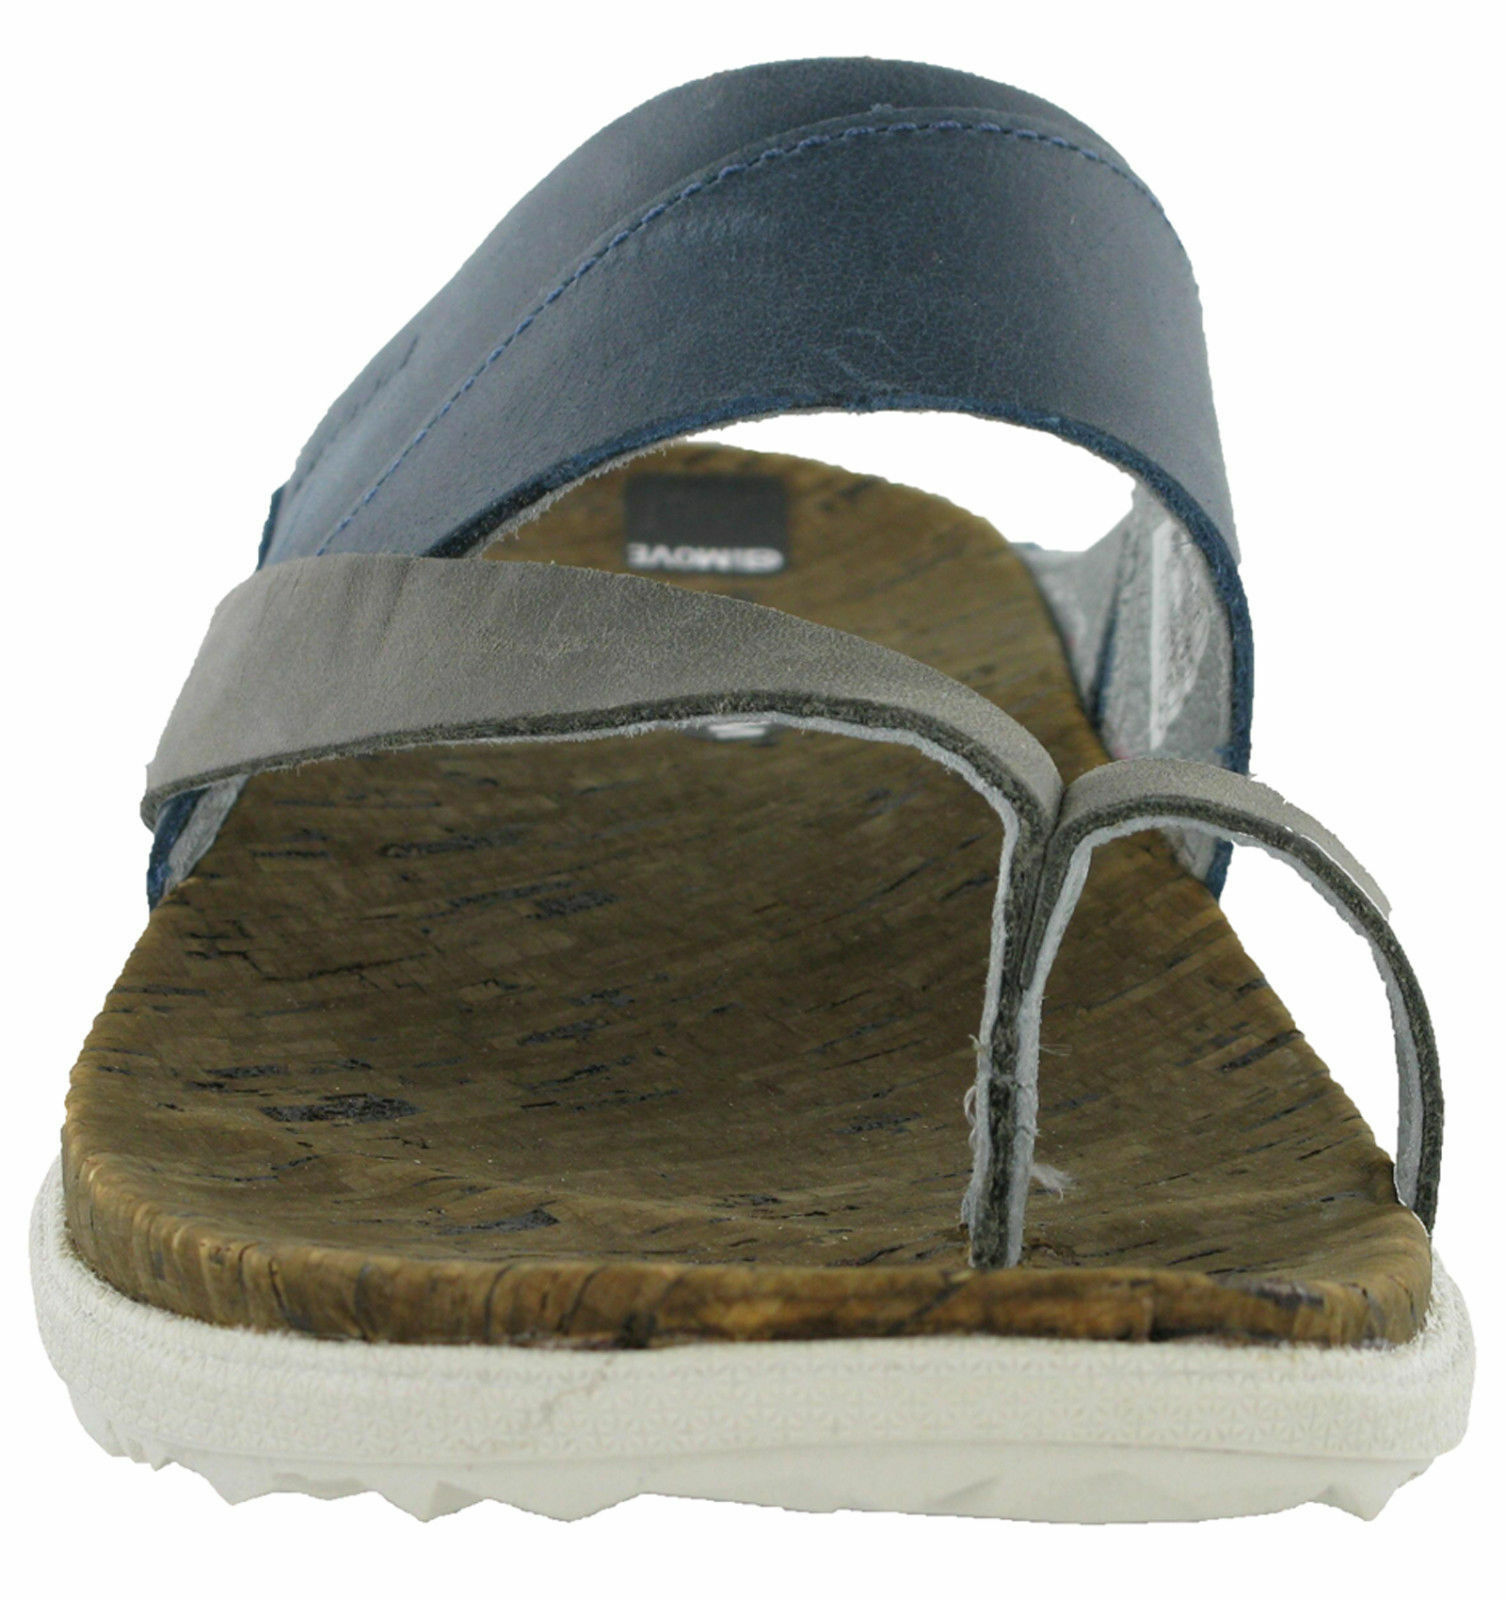 Merrell Sandales Slides Around Town Town Around Thong Summer Damenschuhe Flats Slip On Open Toe 4a1f6b